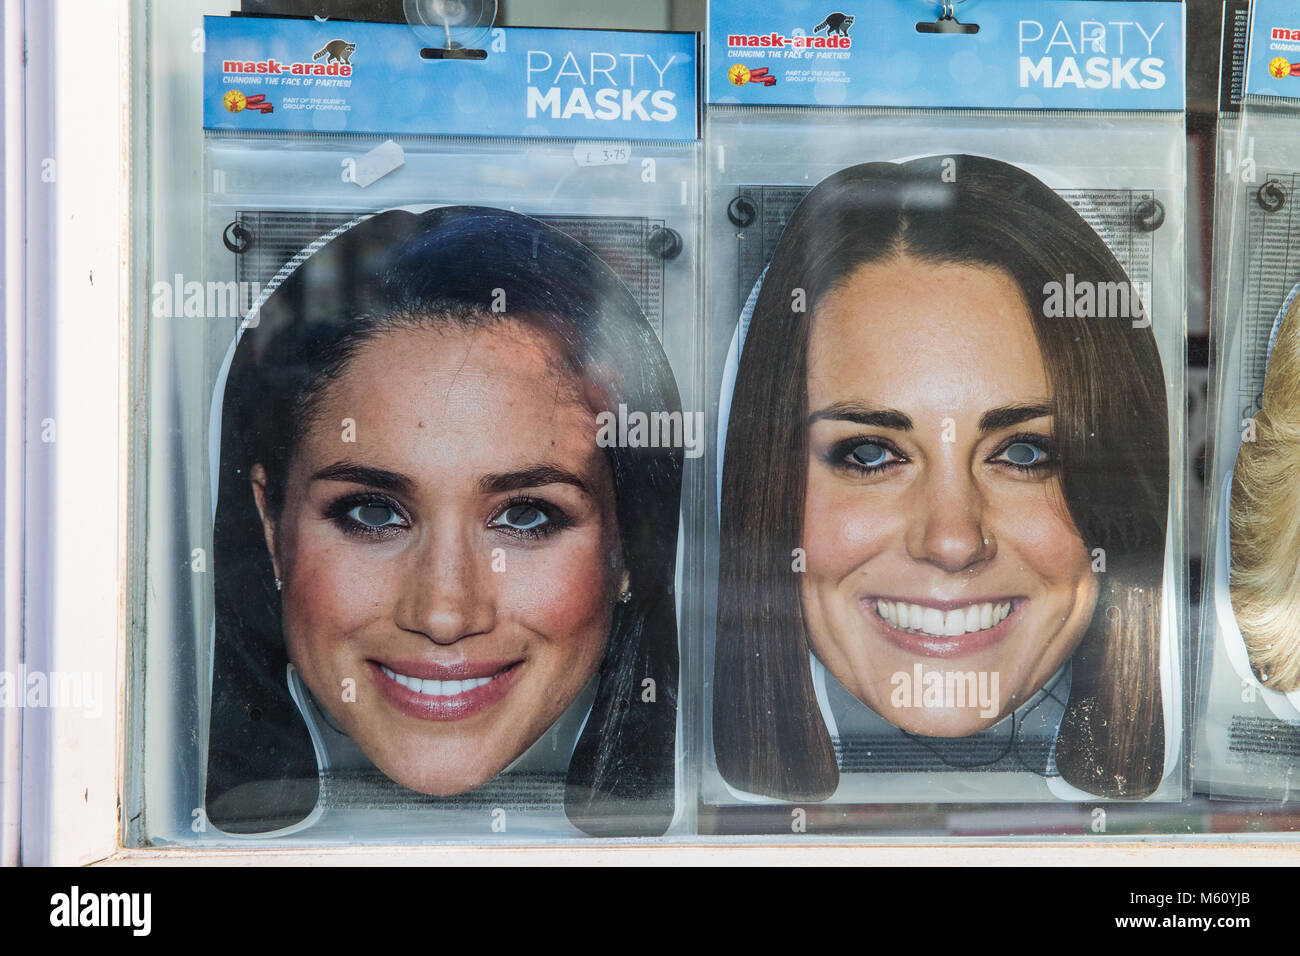 Windsor, UK. 27th February, 2018. Masks featuring images of Meghan Markle and Kate Middleton on sale in a gift shop. Stock Photo